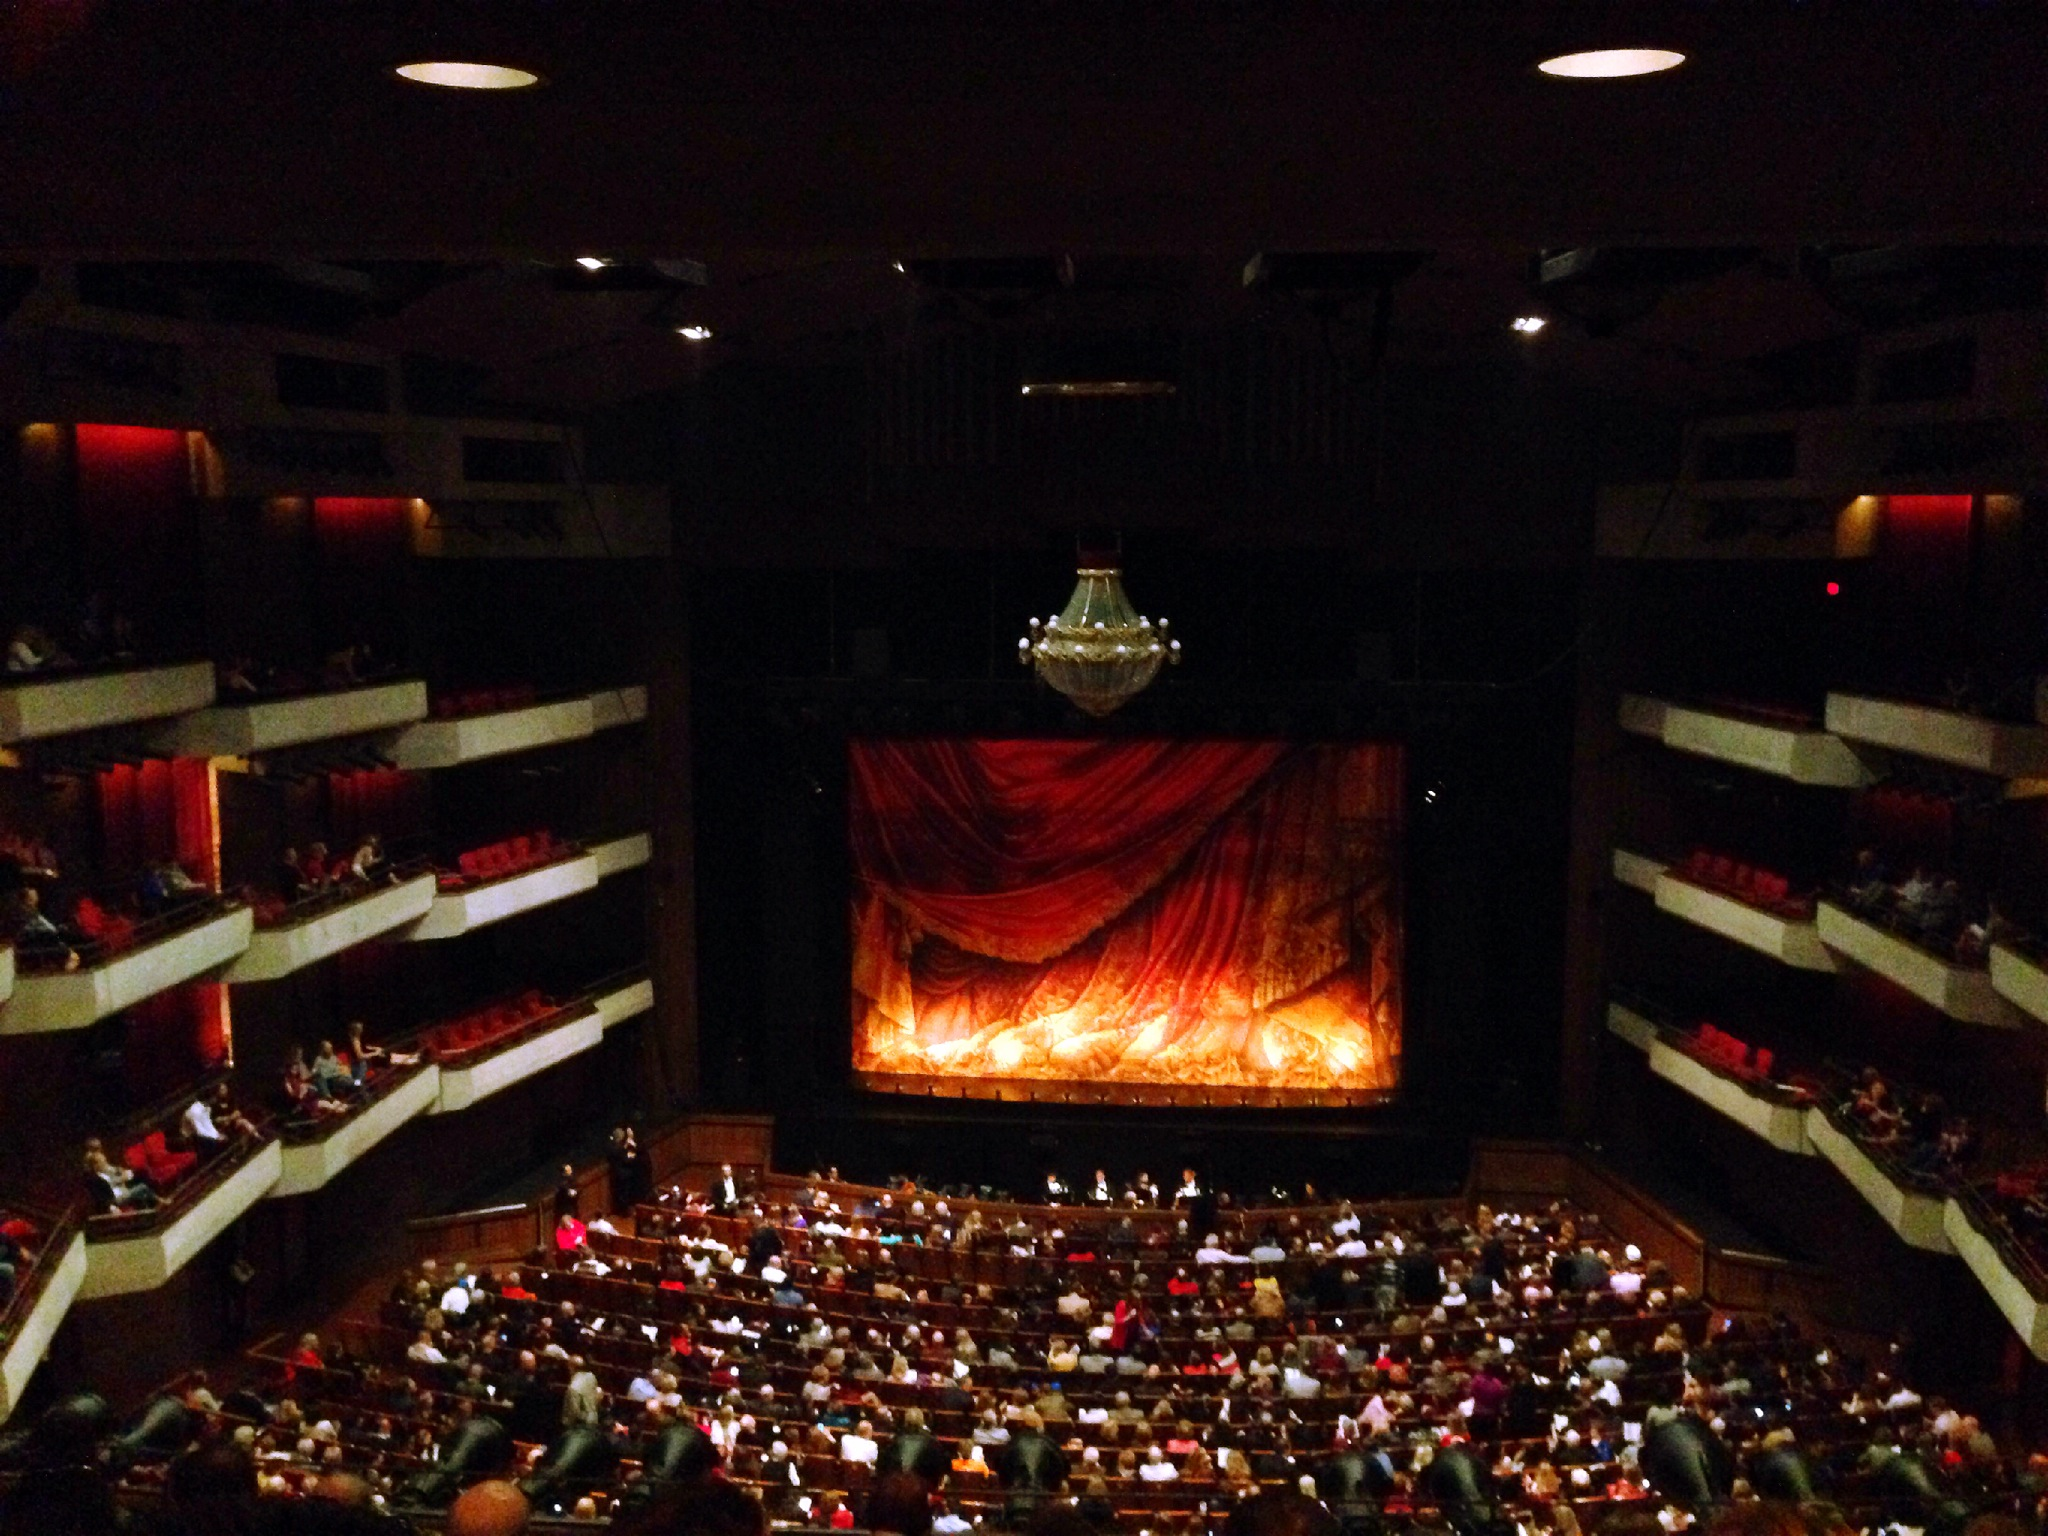 Experience Phantom Of The Opera